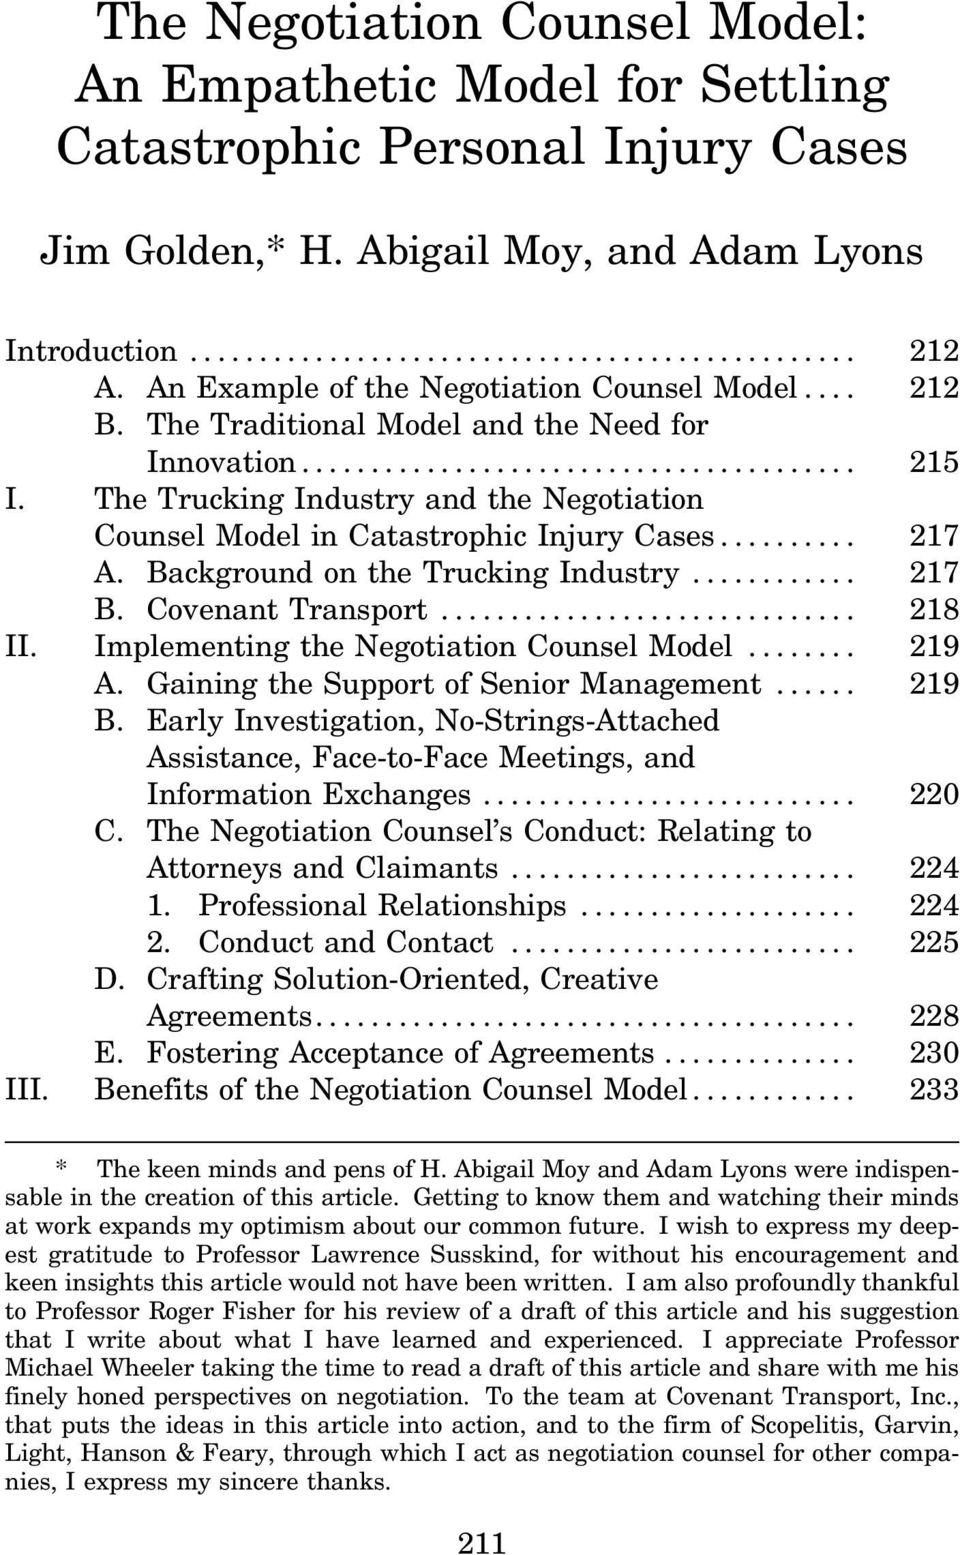 .. 217 A. Background on the Trucking Industry... 217 B. Covenant Transport... 218 II. Implementing the Negotiation Counsel Model... 219 A. Gaining the Support of Senior Management... 219 B.